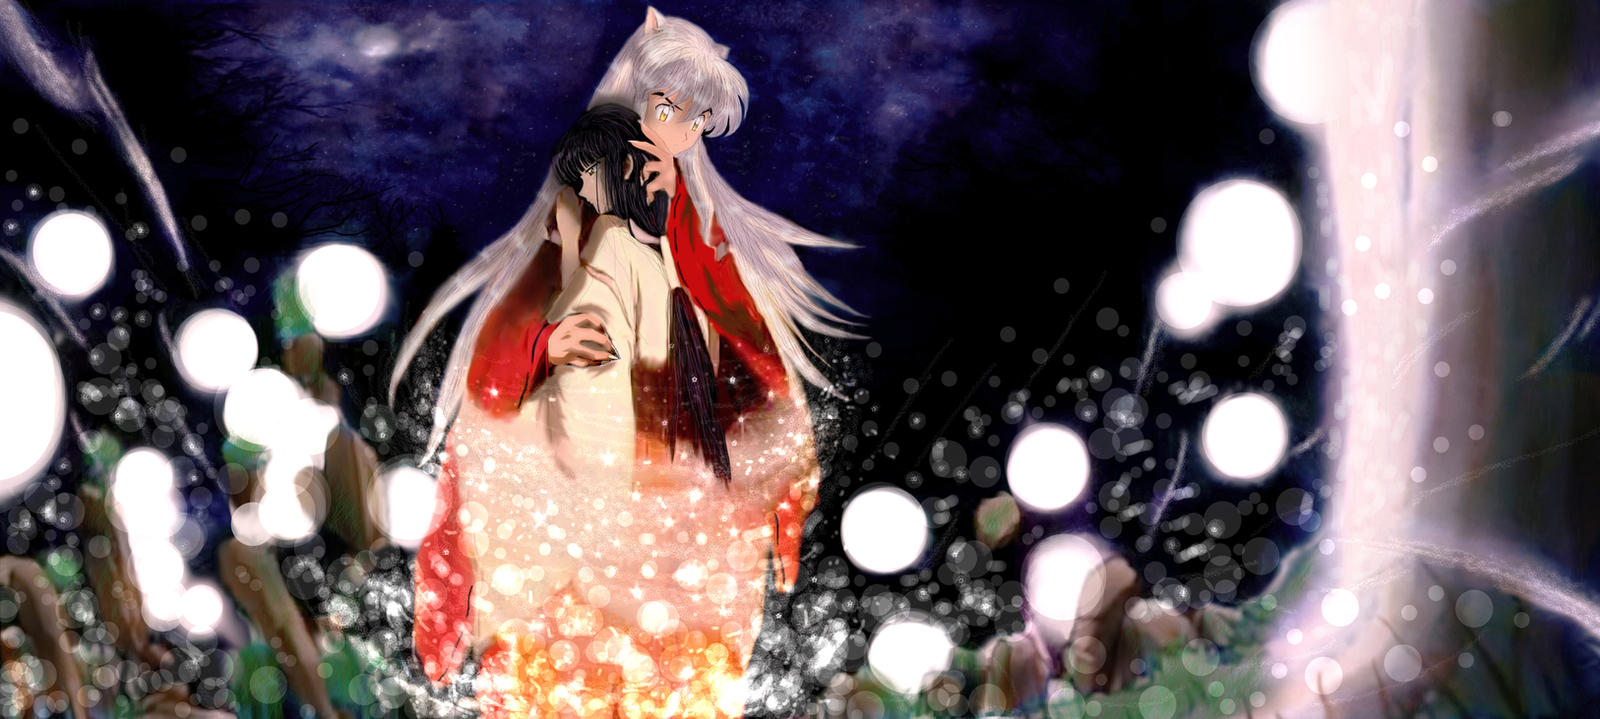 Endless love - My end for you Kikyou - fanfic by ...